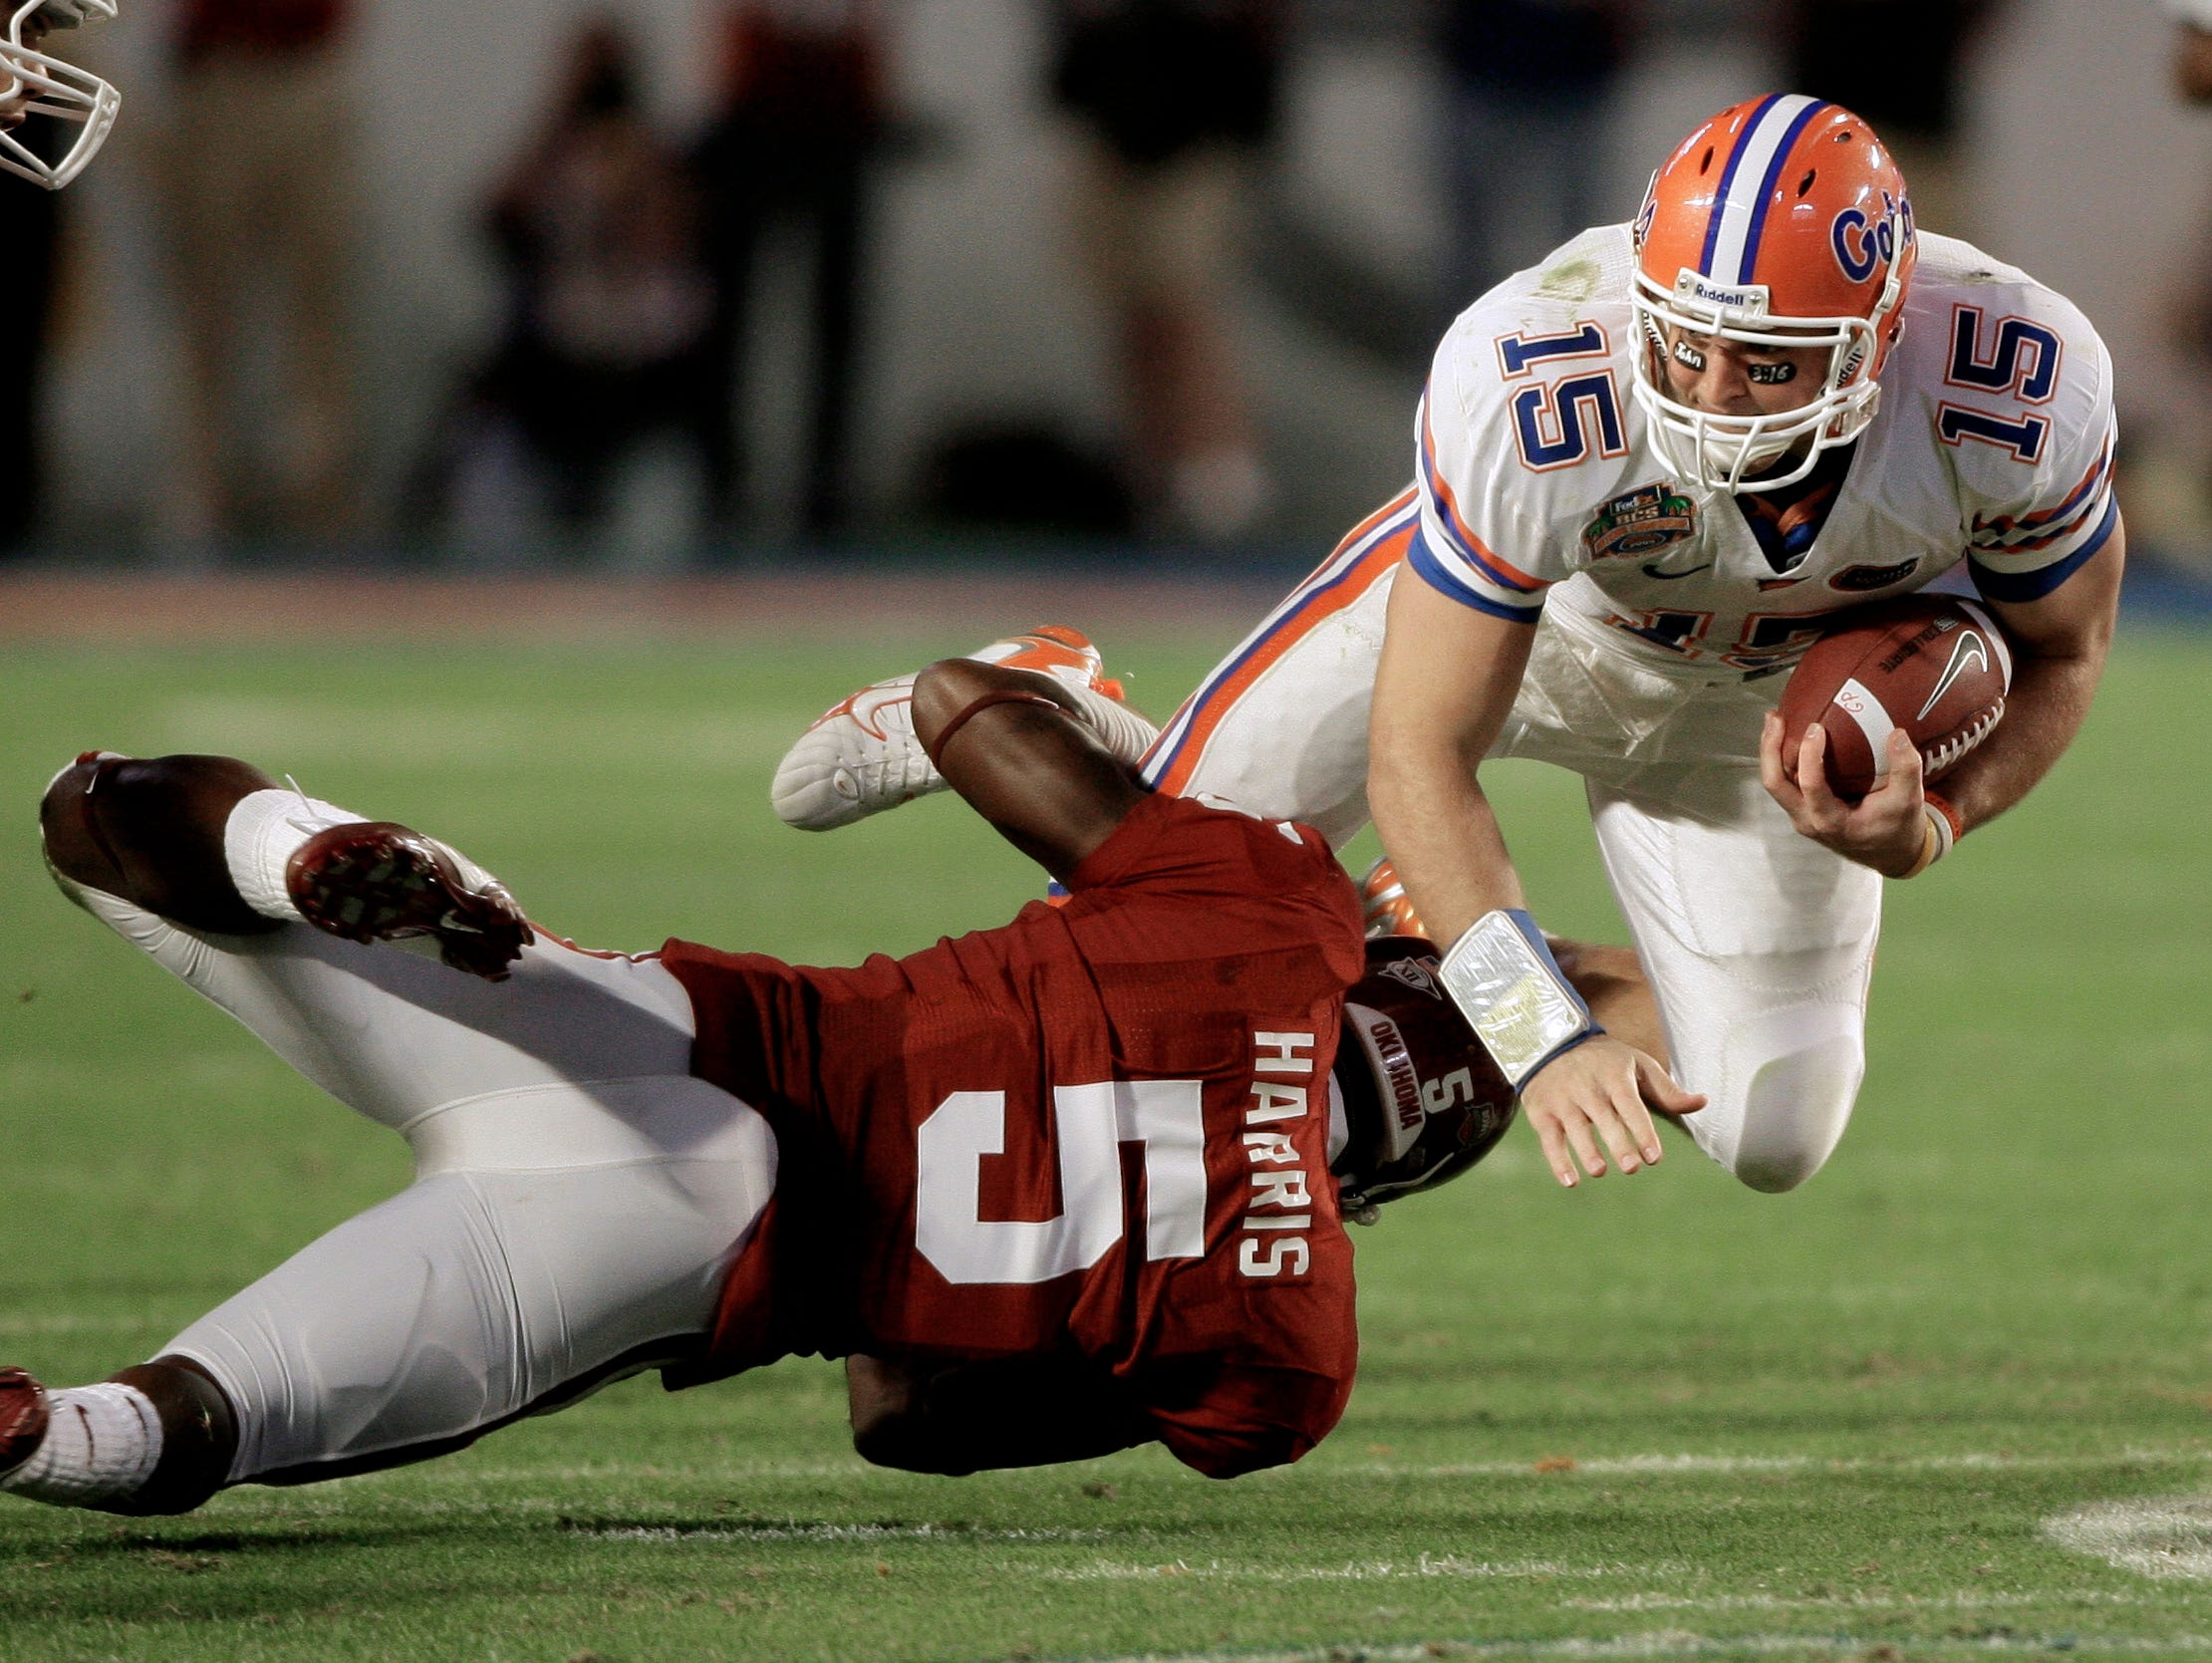 Florida quarterback Tim Tebow (15) is stopped by Oklahoma's Nic Harris (5) during the third quarter of the BCS Championship NCAA college football game in Miami, Thursday, Jan. 8, 2009. (AP Photo/Chris O'Meara)